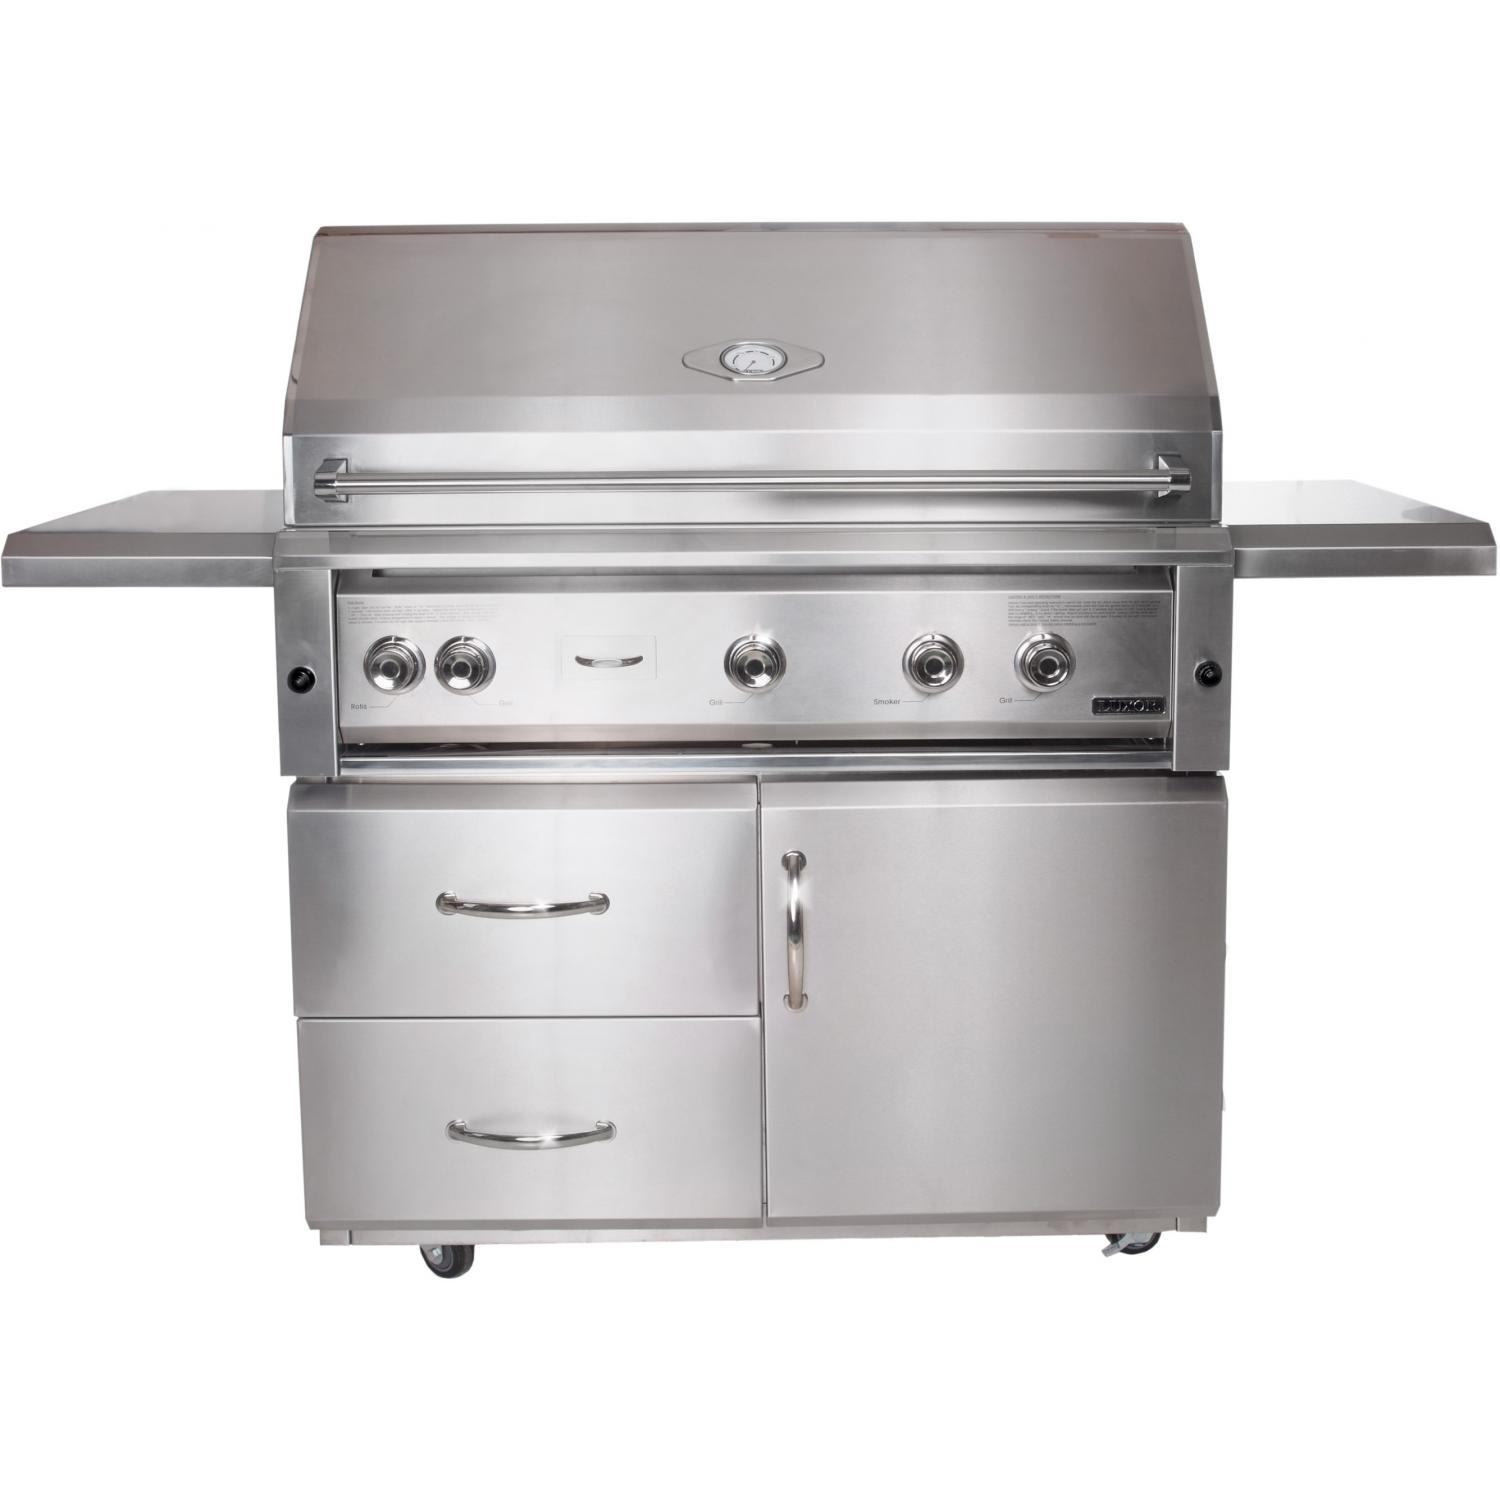 Luxor Gas Grills 42 Inch All Infrared Propane Gas Grill On Cart With Rotisserie AHT-42FR-LP